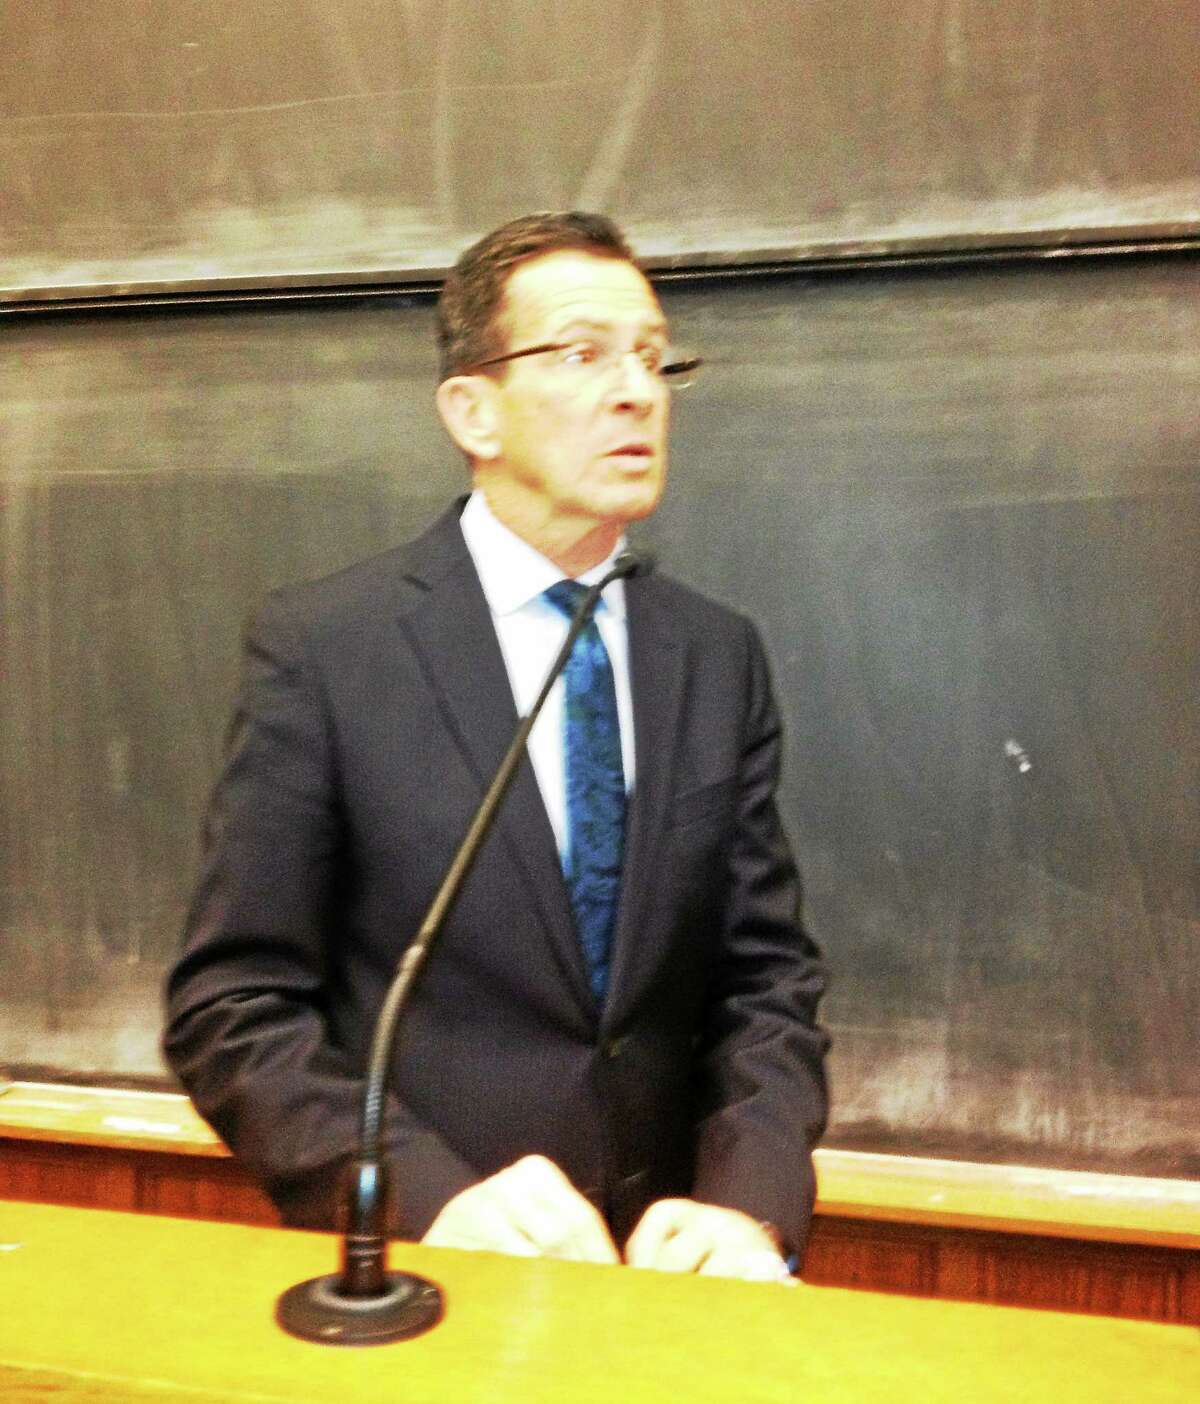 Gov. Dannel P. Malloy talks about crime reduction initiatives in a speech at Yale Law School Tuesday in New Haven.